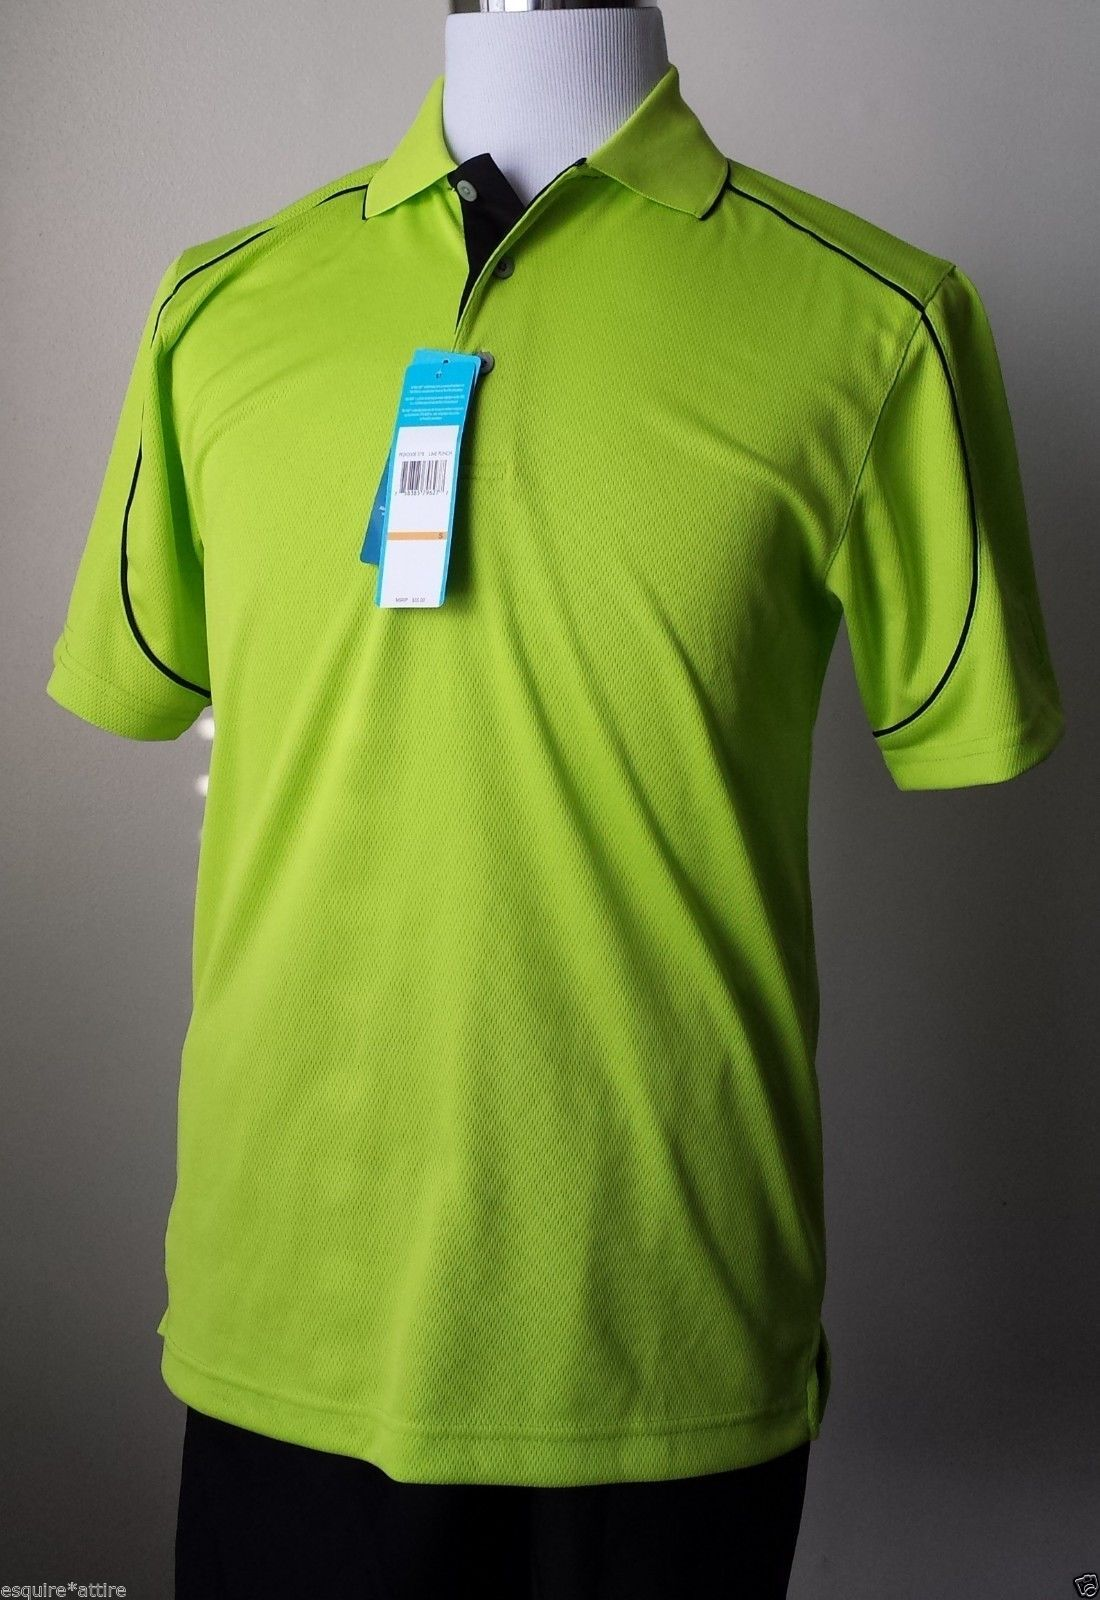 PGA TOUR men size S GOLF #shirt Green Color Short Sleeves $55 NWT POLO Style visit our ebay store at  http://stores.ebay.com/esquirestore